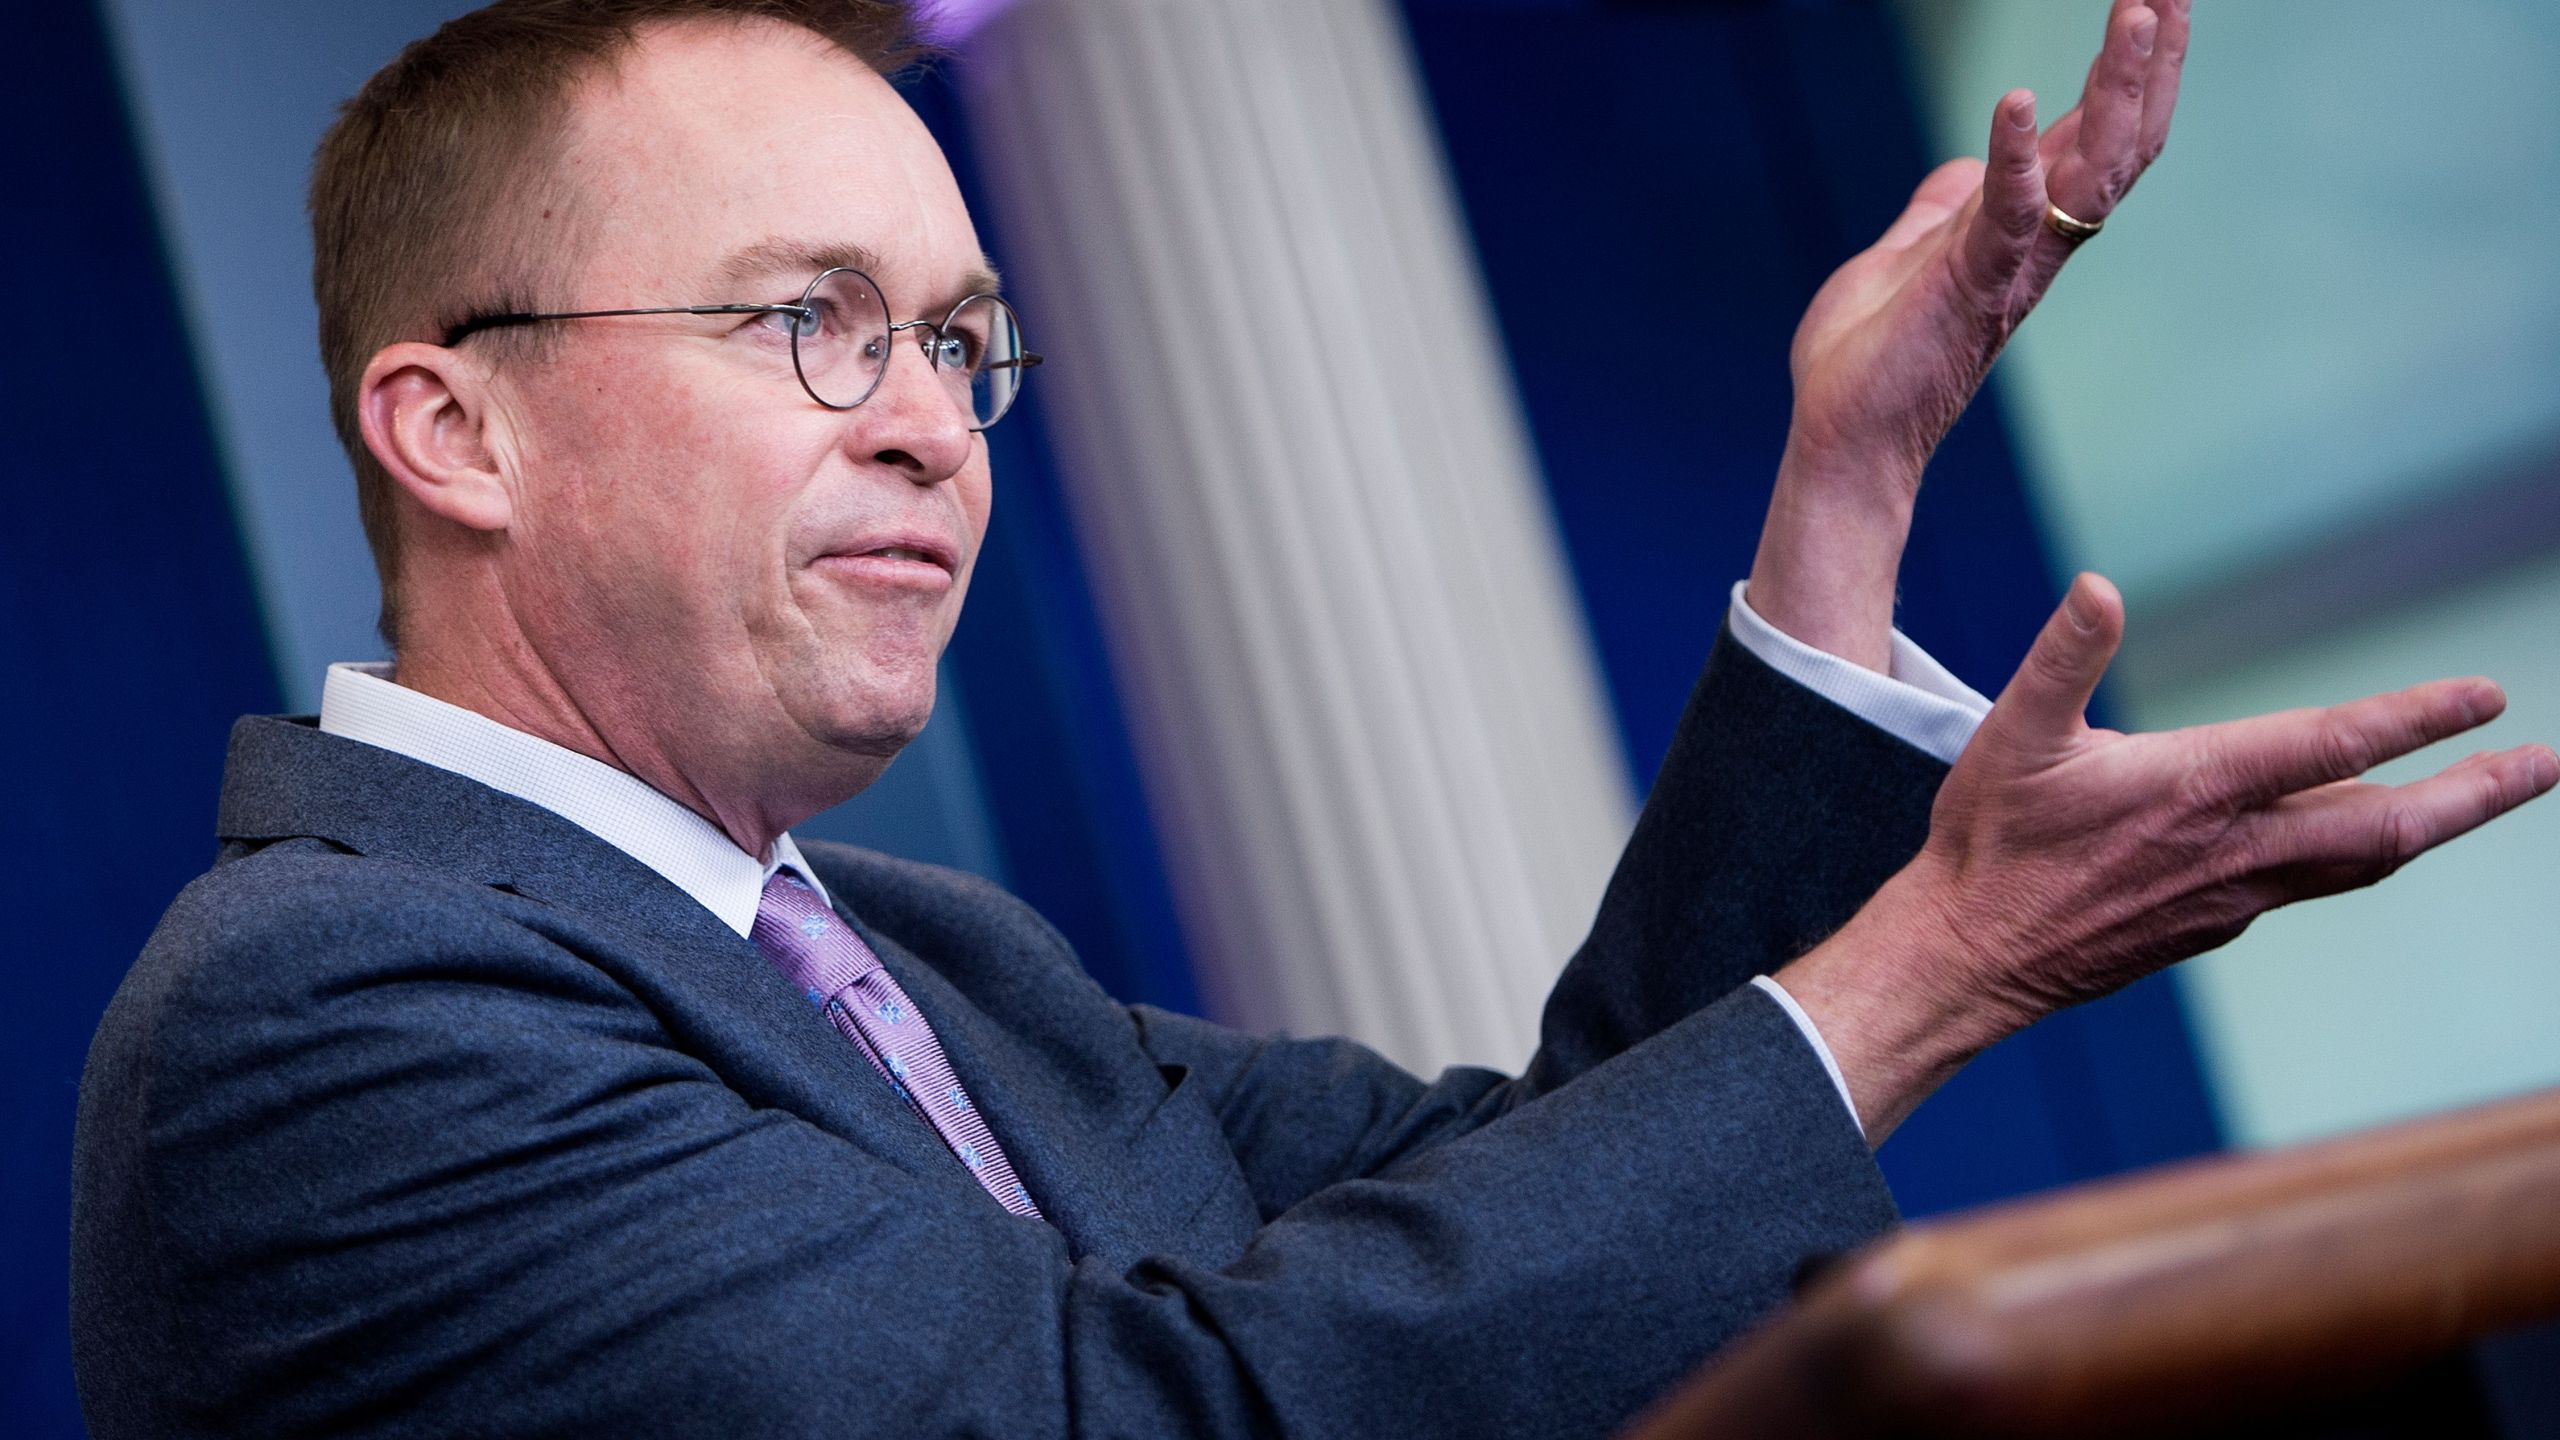 Office of Management and Budget Director Mick Mulvaney speaks about the Consolidated Appropriations Act of 2018 at the White House March 22, 2018. Credit: BRENDAN SMIALOWSKI/AFP/Getty Images)